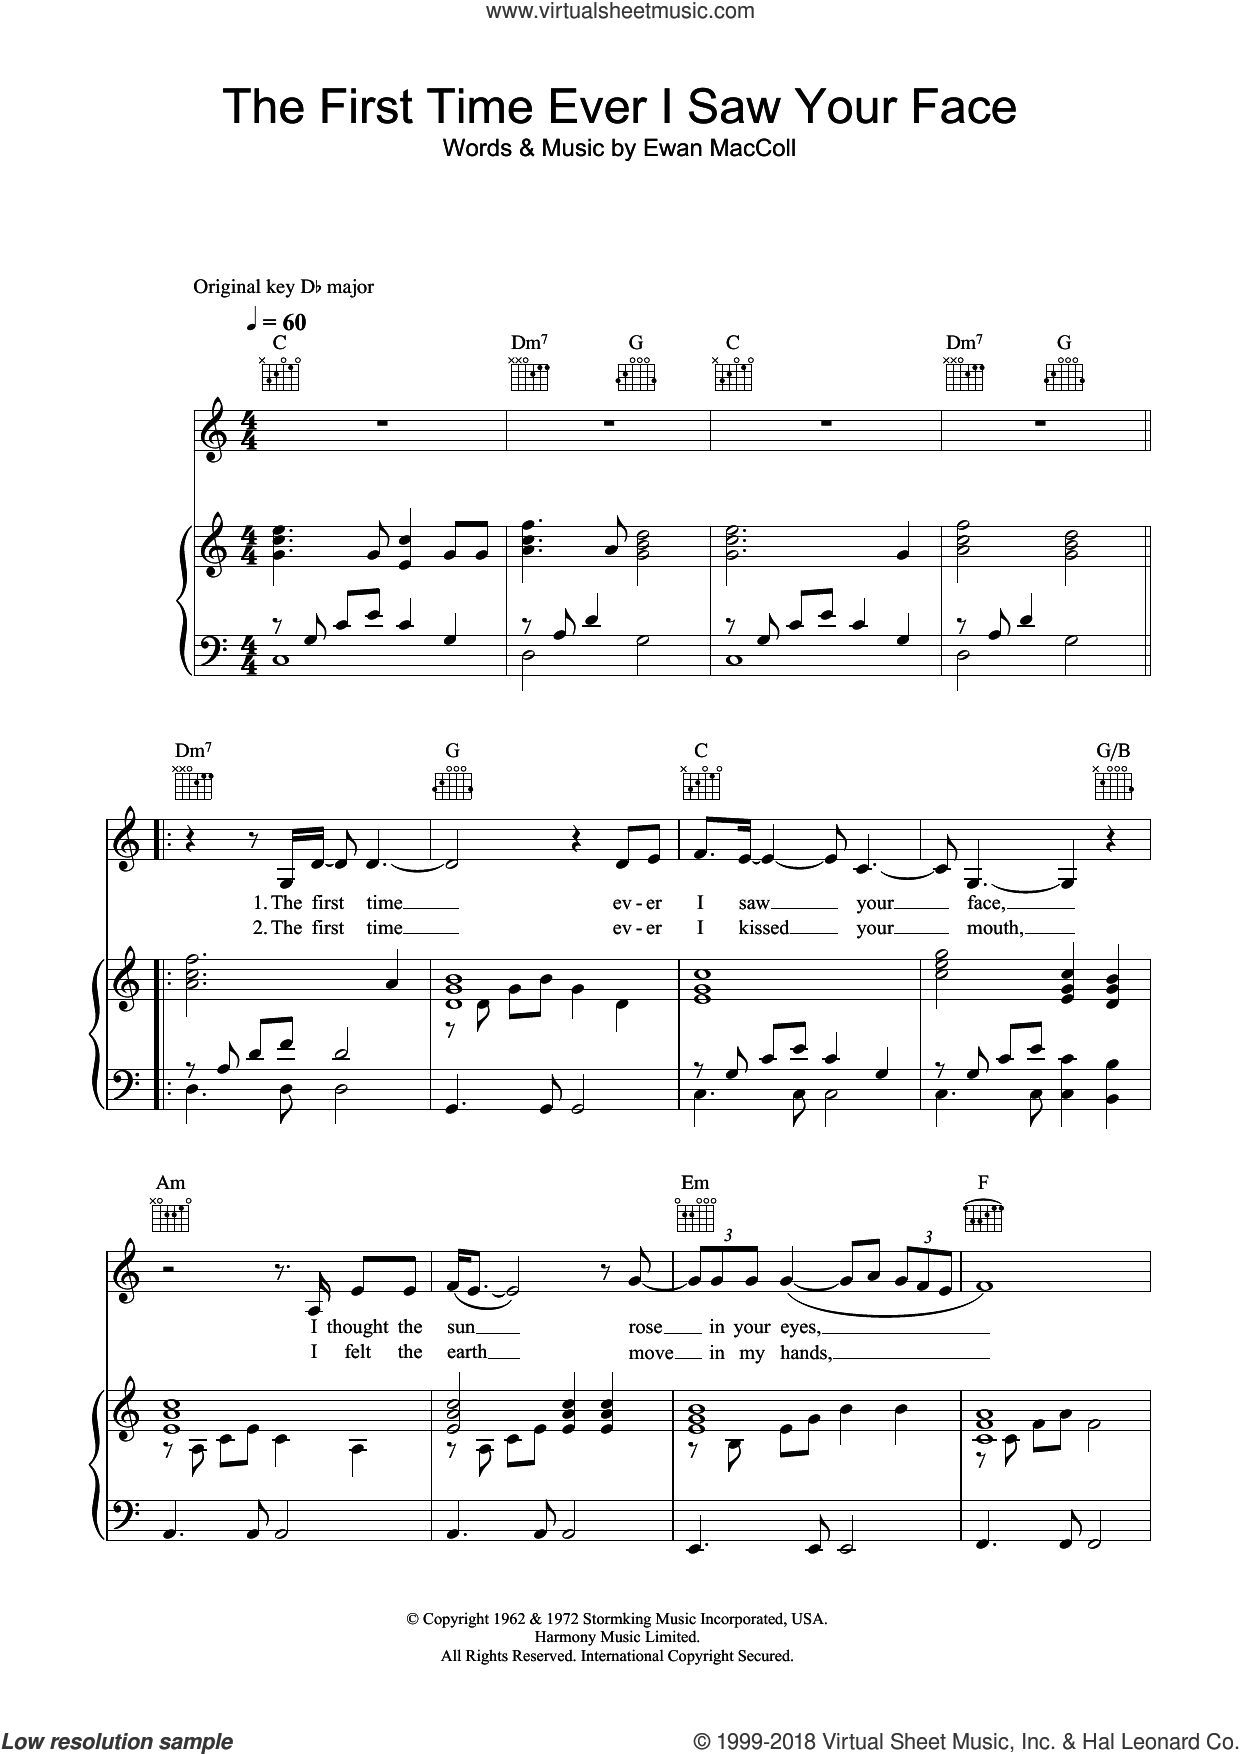 The First Time Ever I Saw Your Face sheet music for voice, piano or guitar by Leona Lewis and Ewan MacColl, intermediate skill level